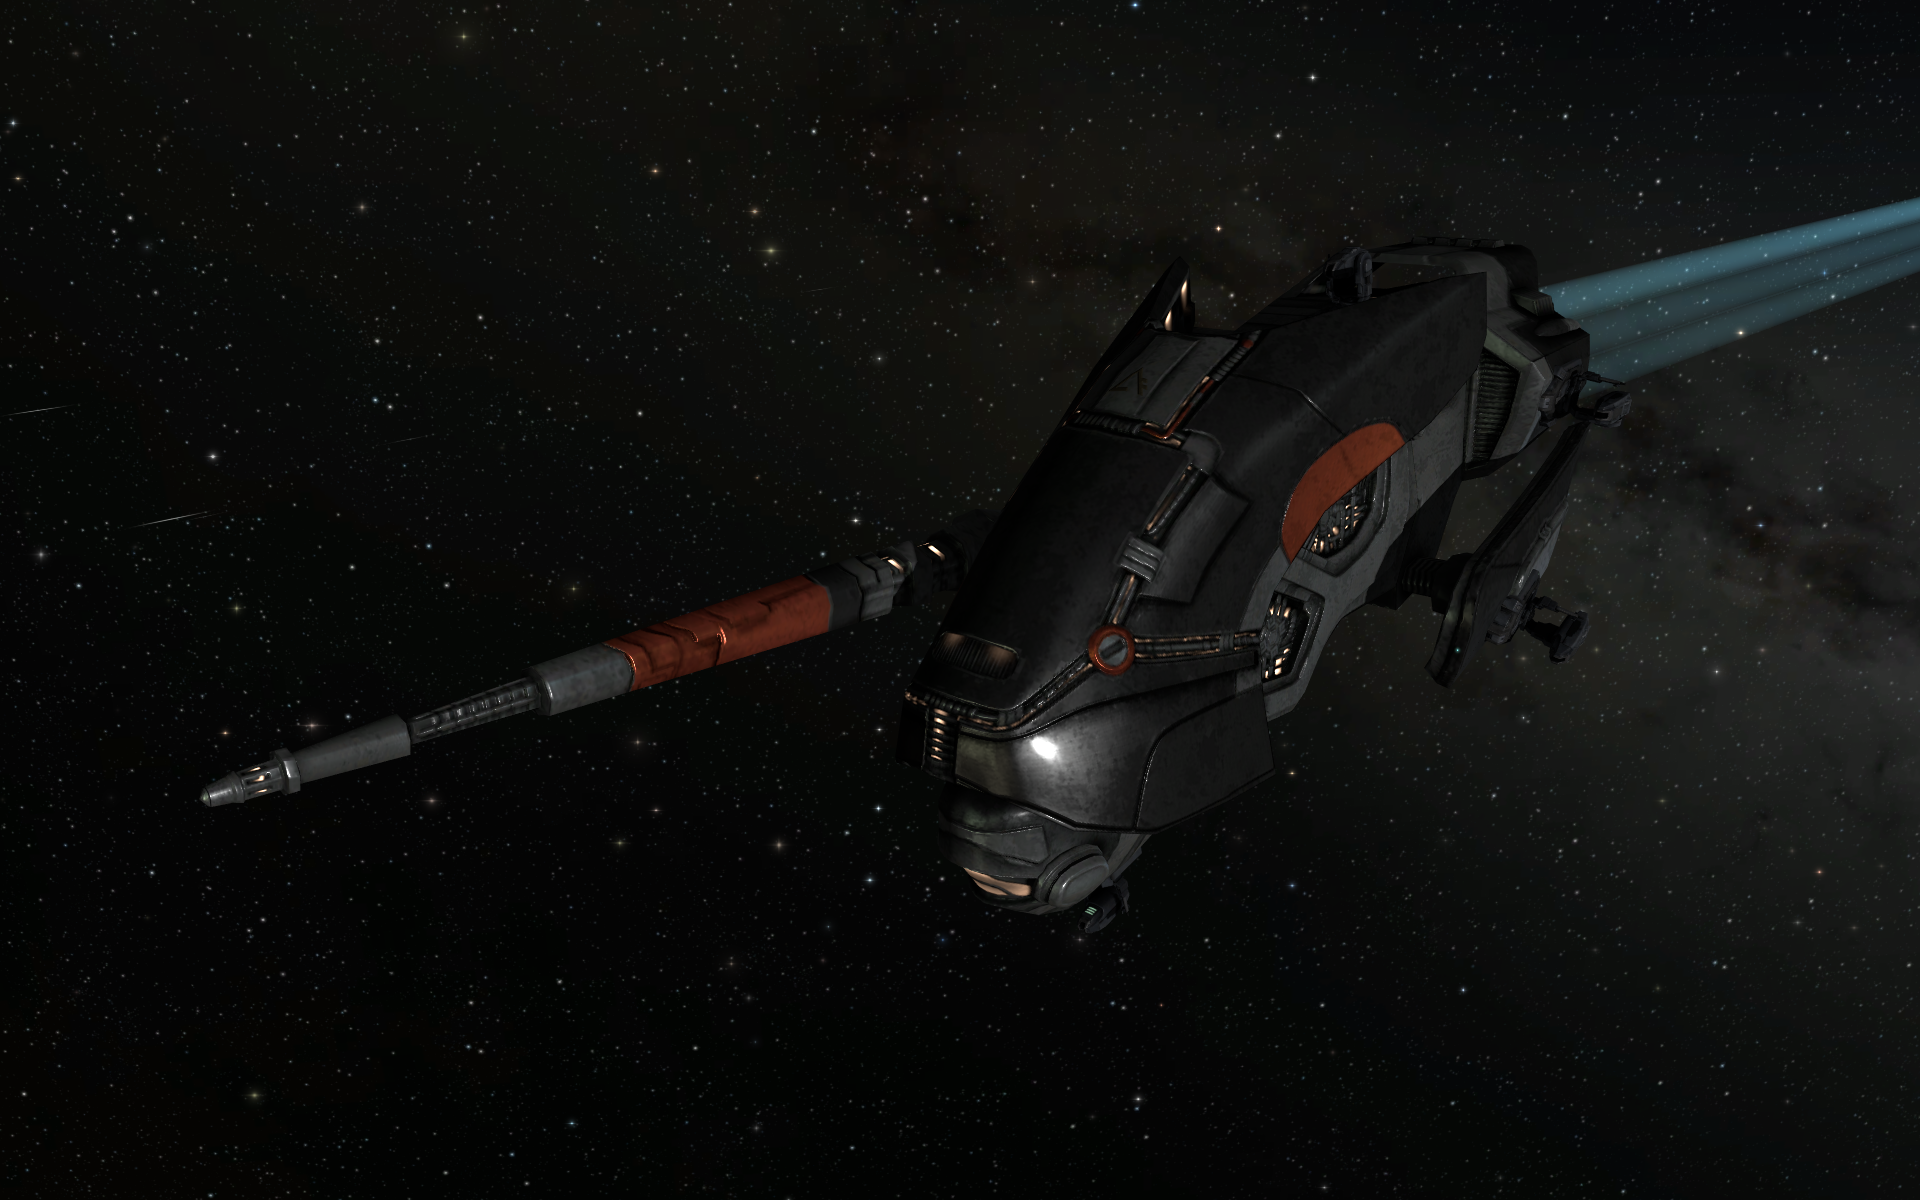 Don't like the dull green and bronze of your standard Incursus? Get the skin for the Aliastra Edition and enjoy your sporty new red, black and grey paint job, instead.